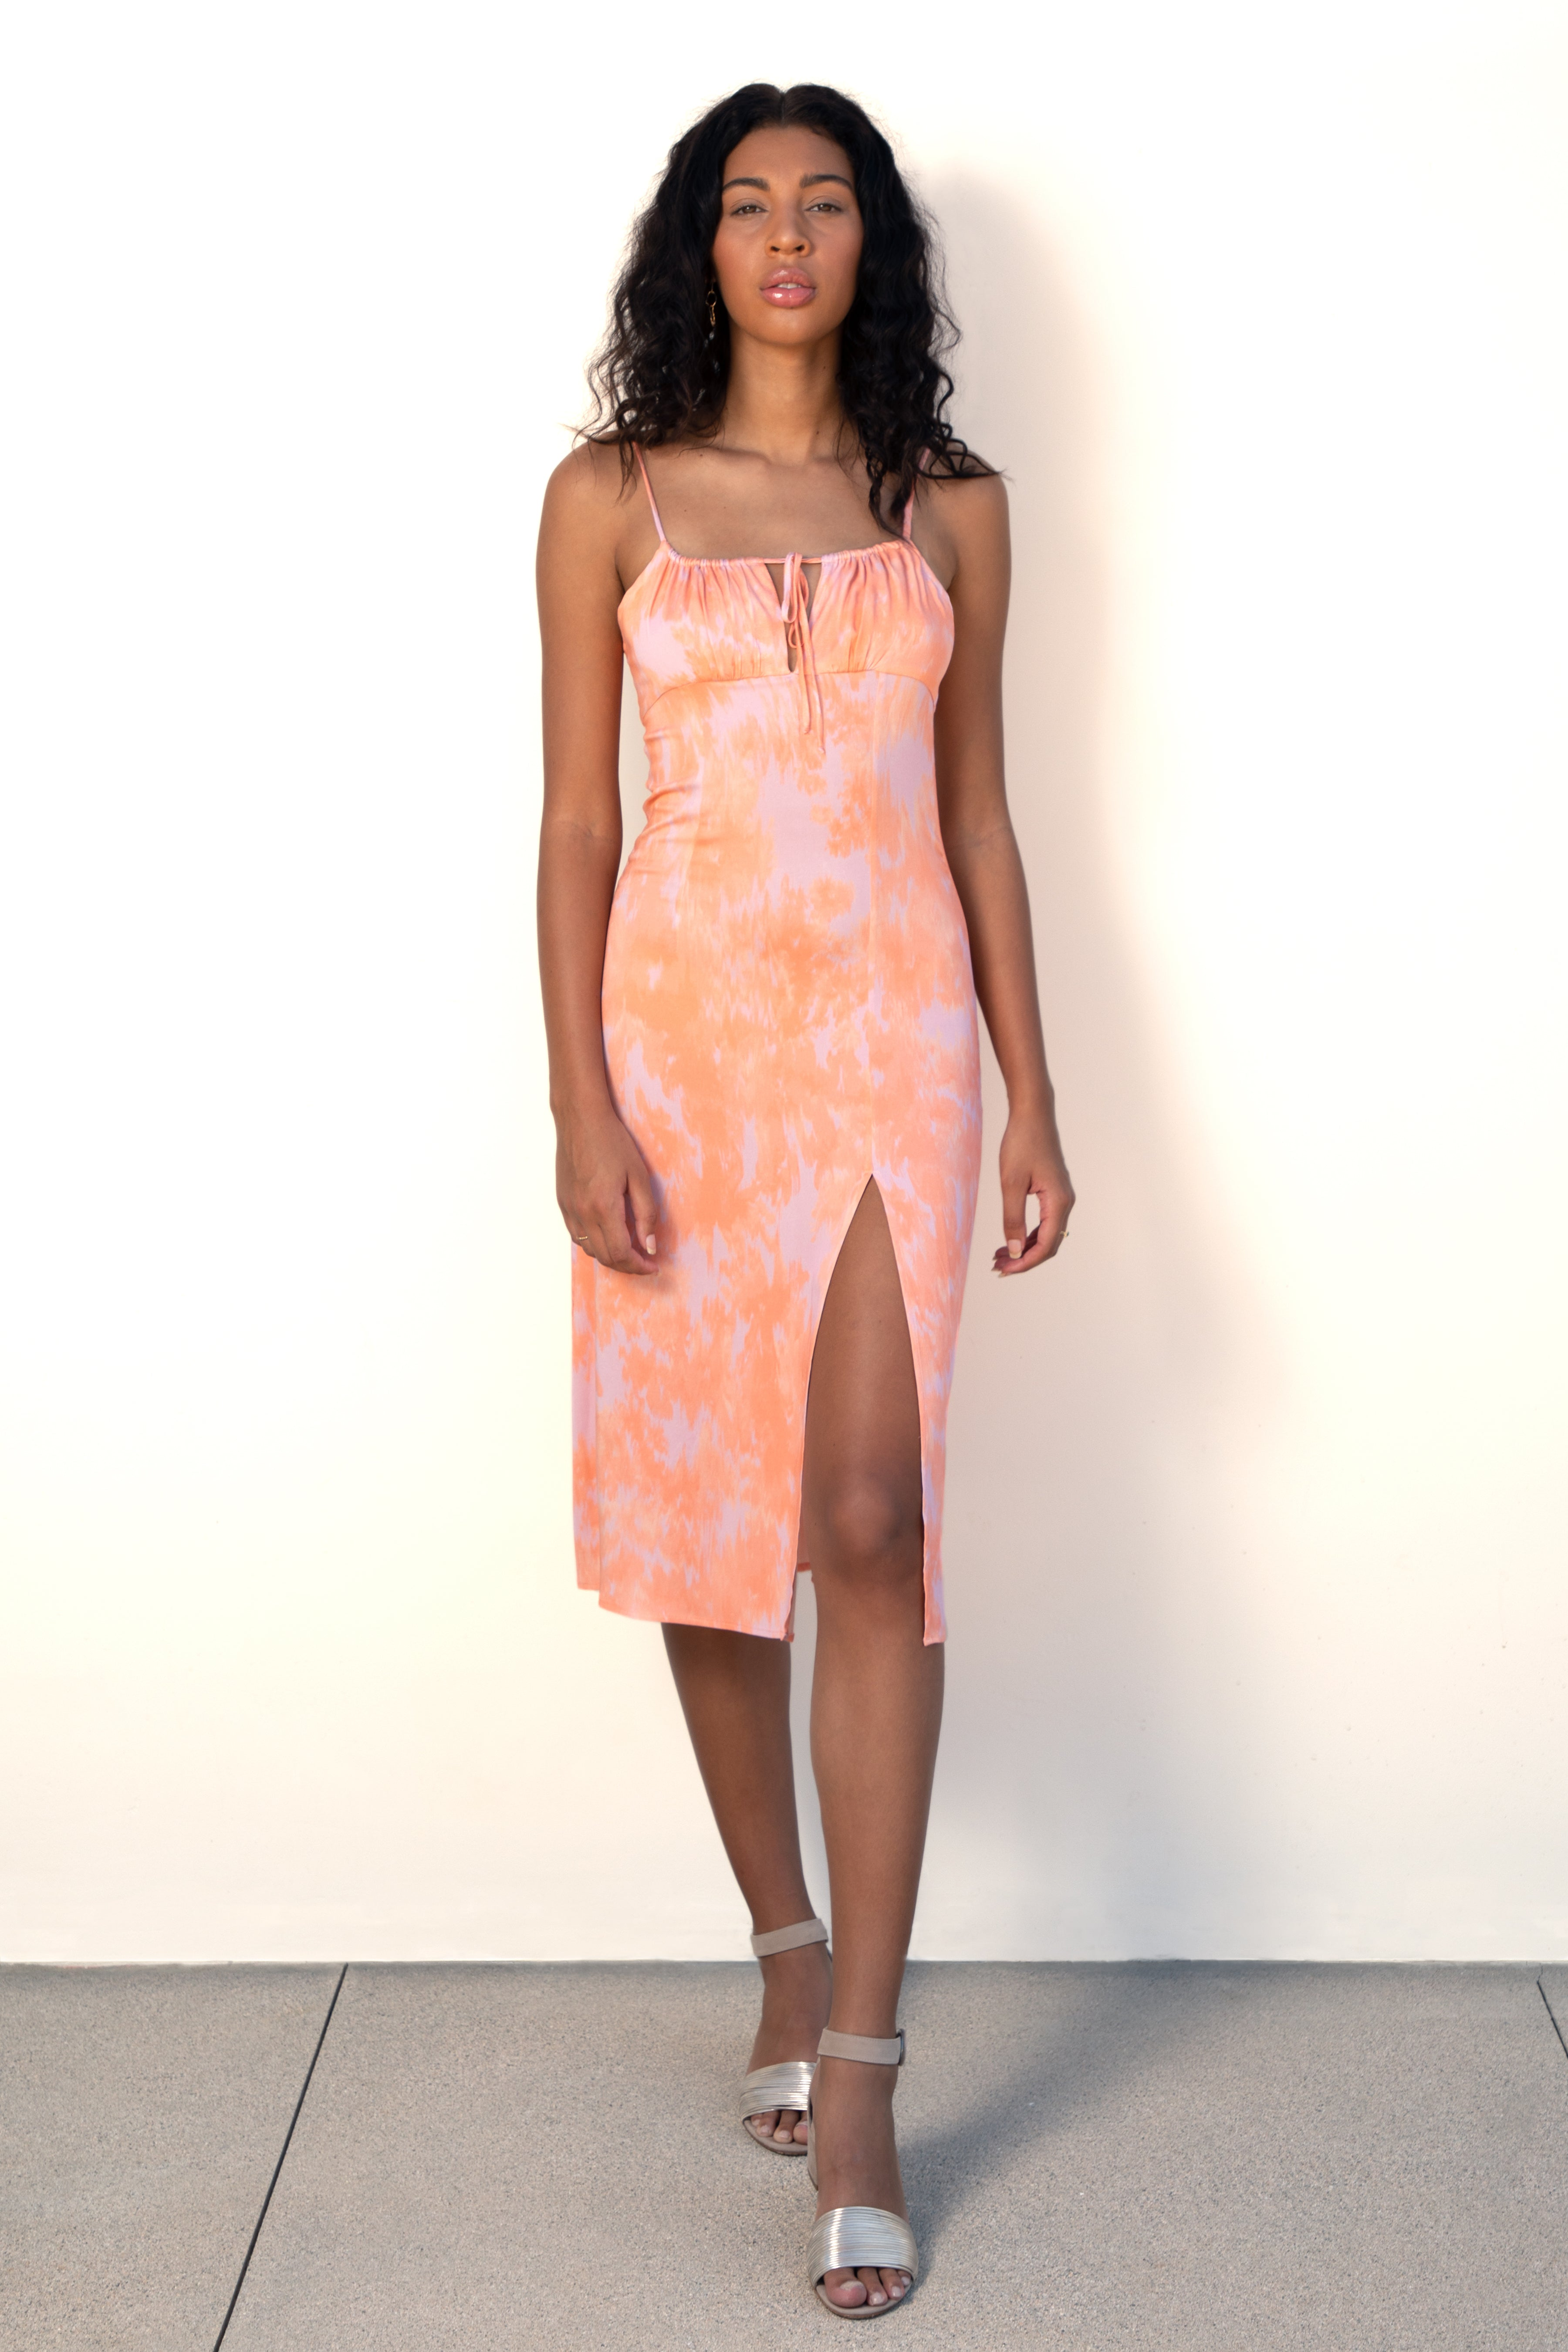 Model wears LA fashion brand Finchley Camino's peach colored spaghetti strap midi dress with a ruched bust and a thigh high slit